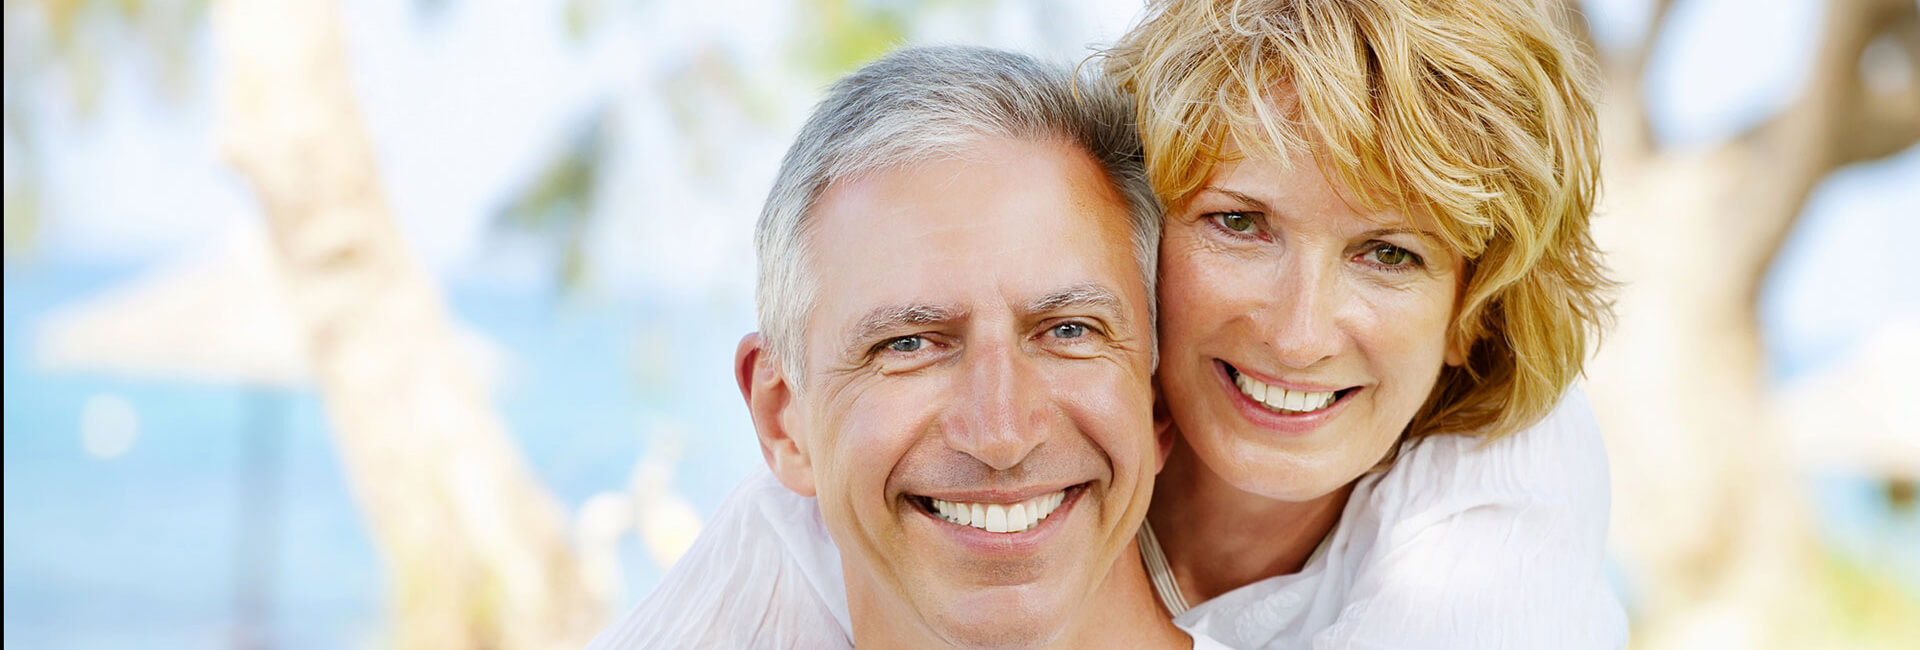 Elderly couple smiling outdoors embracing each other